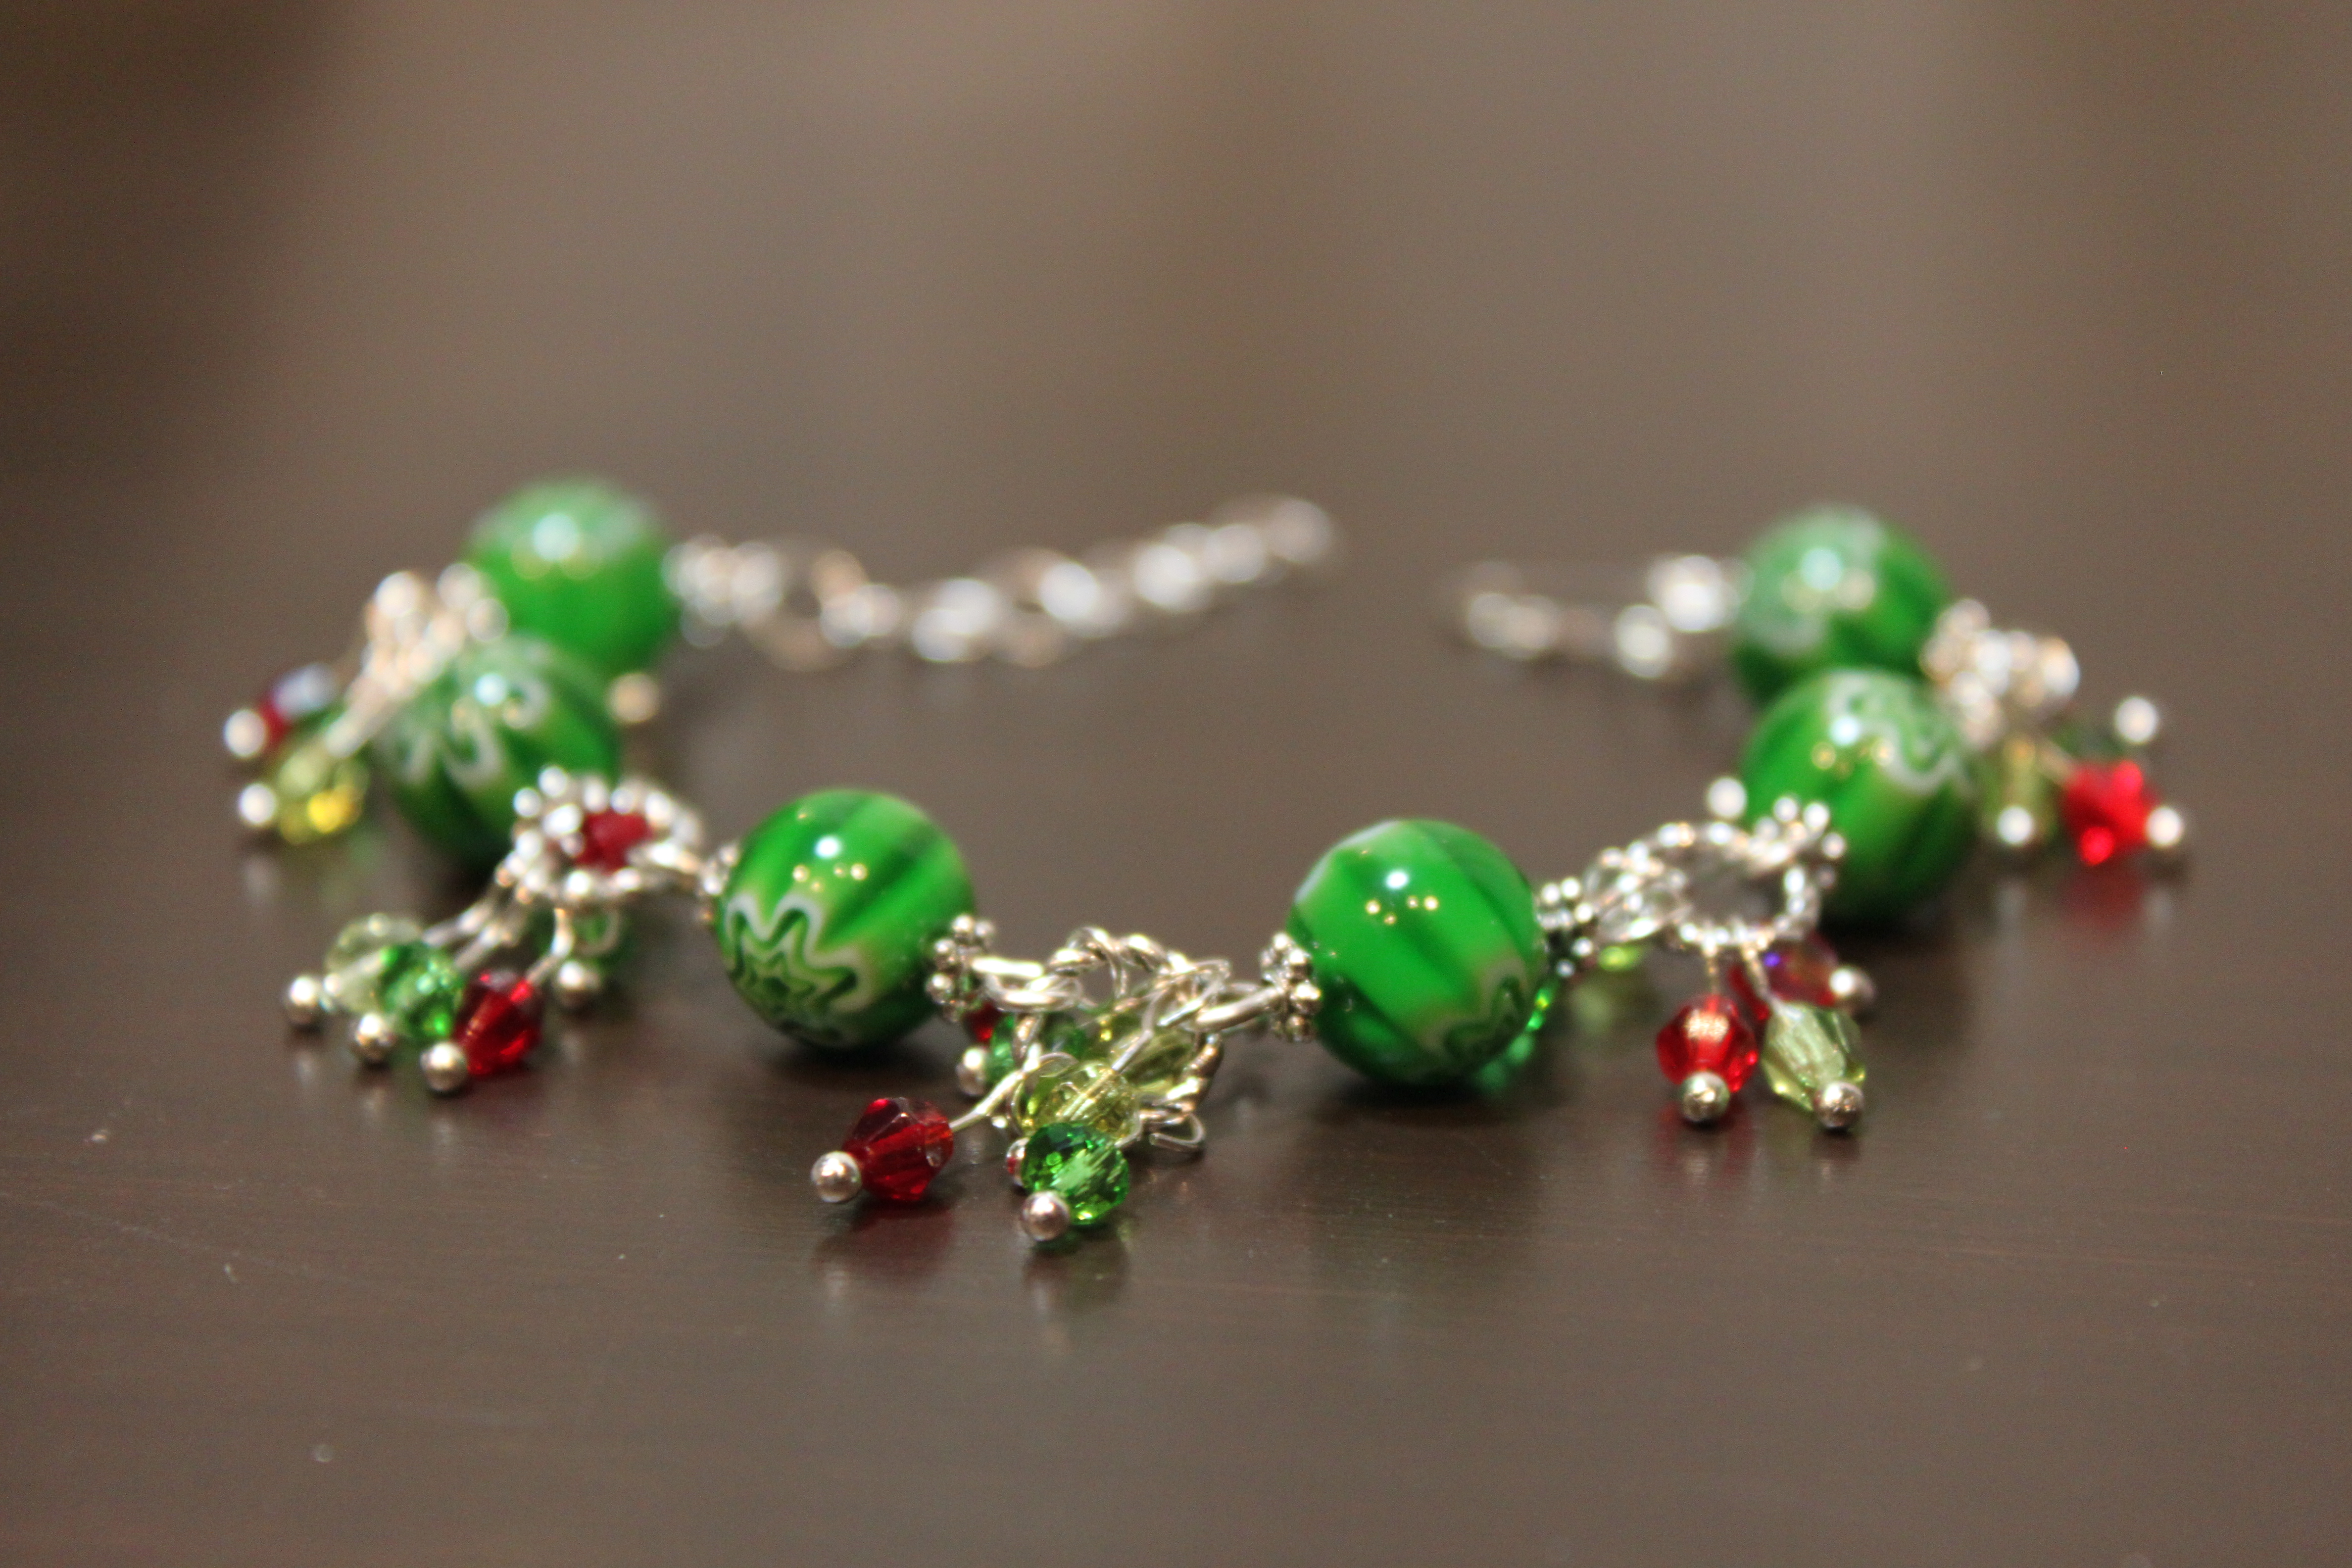 Bracelet with green beads